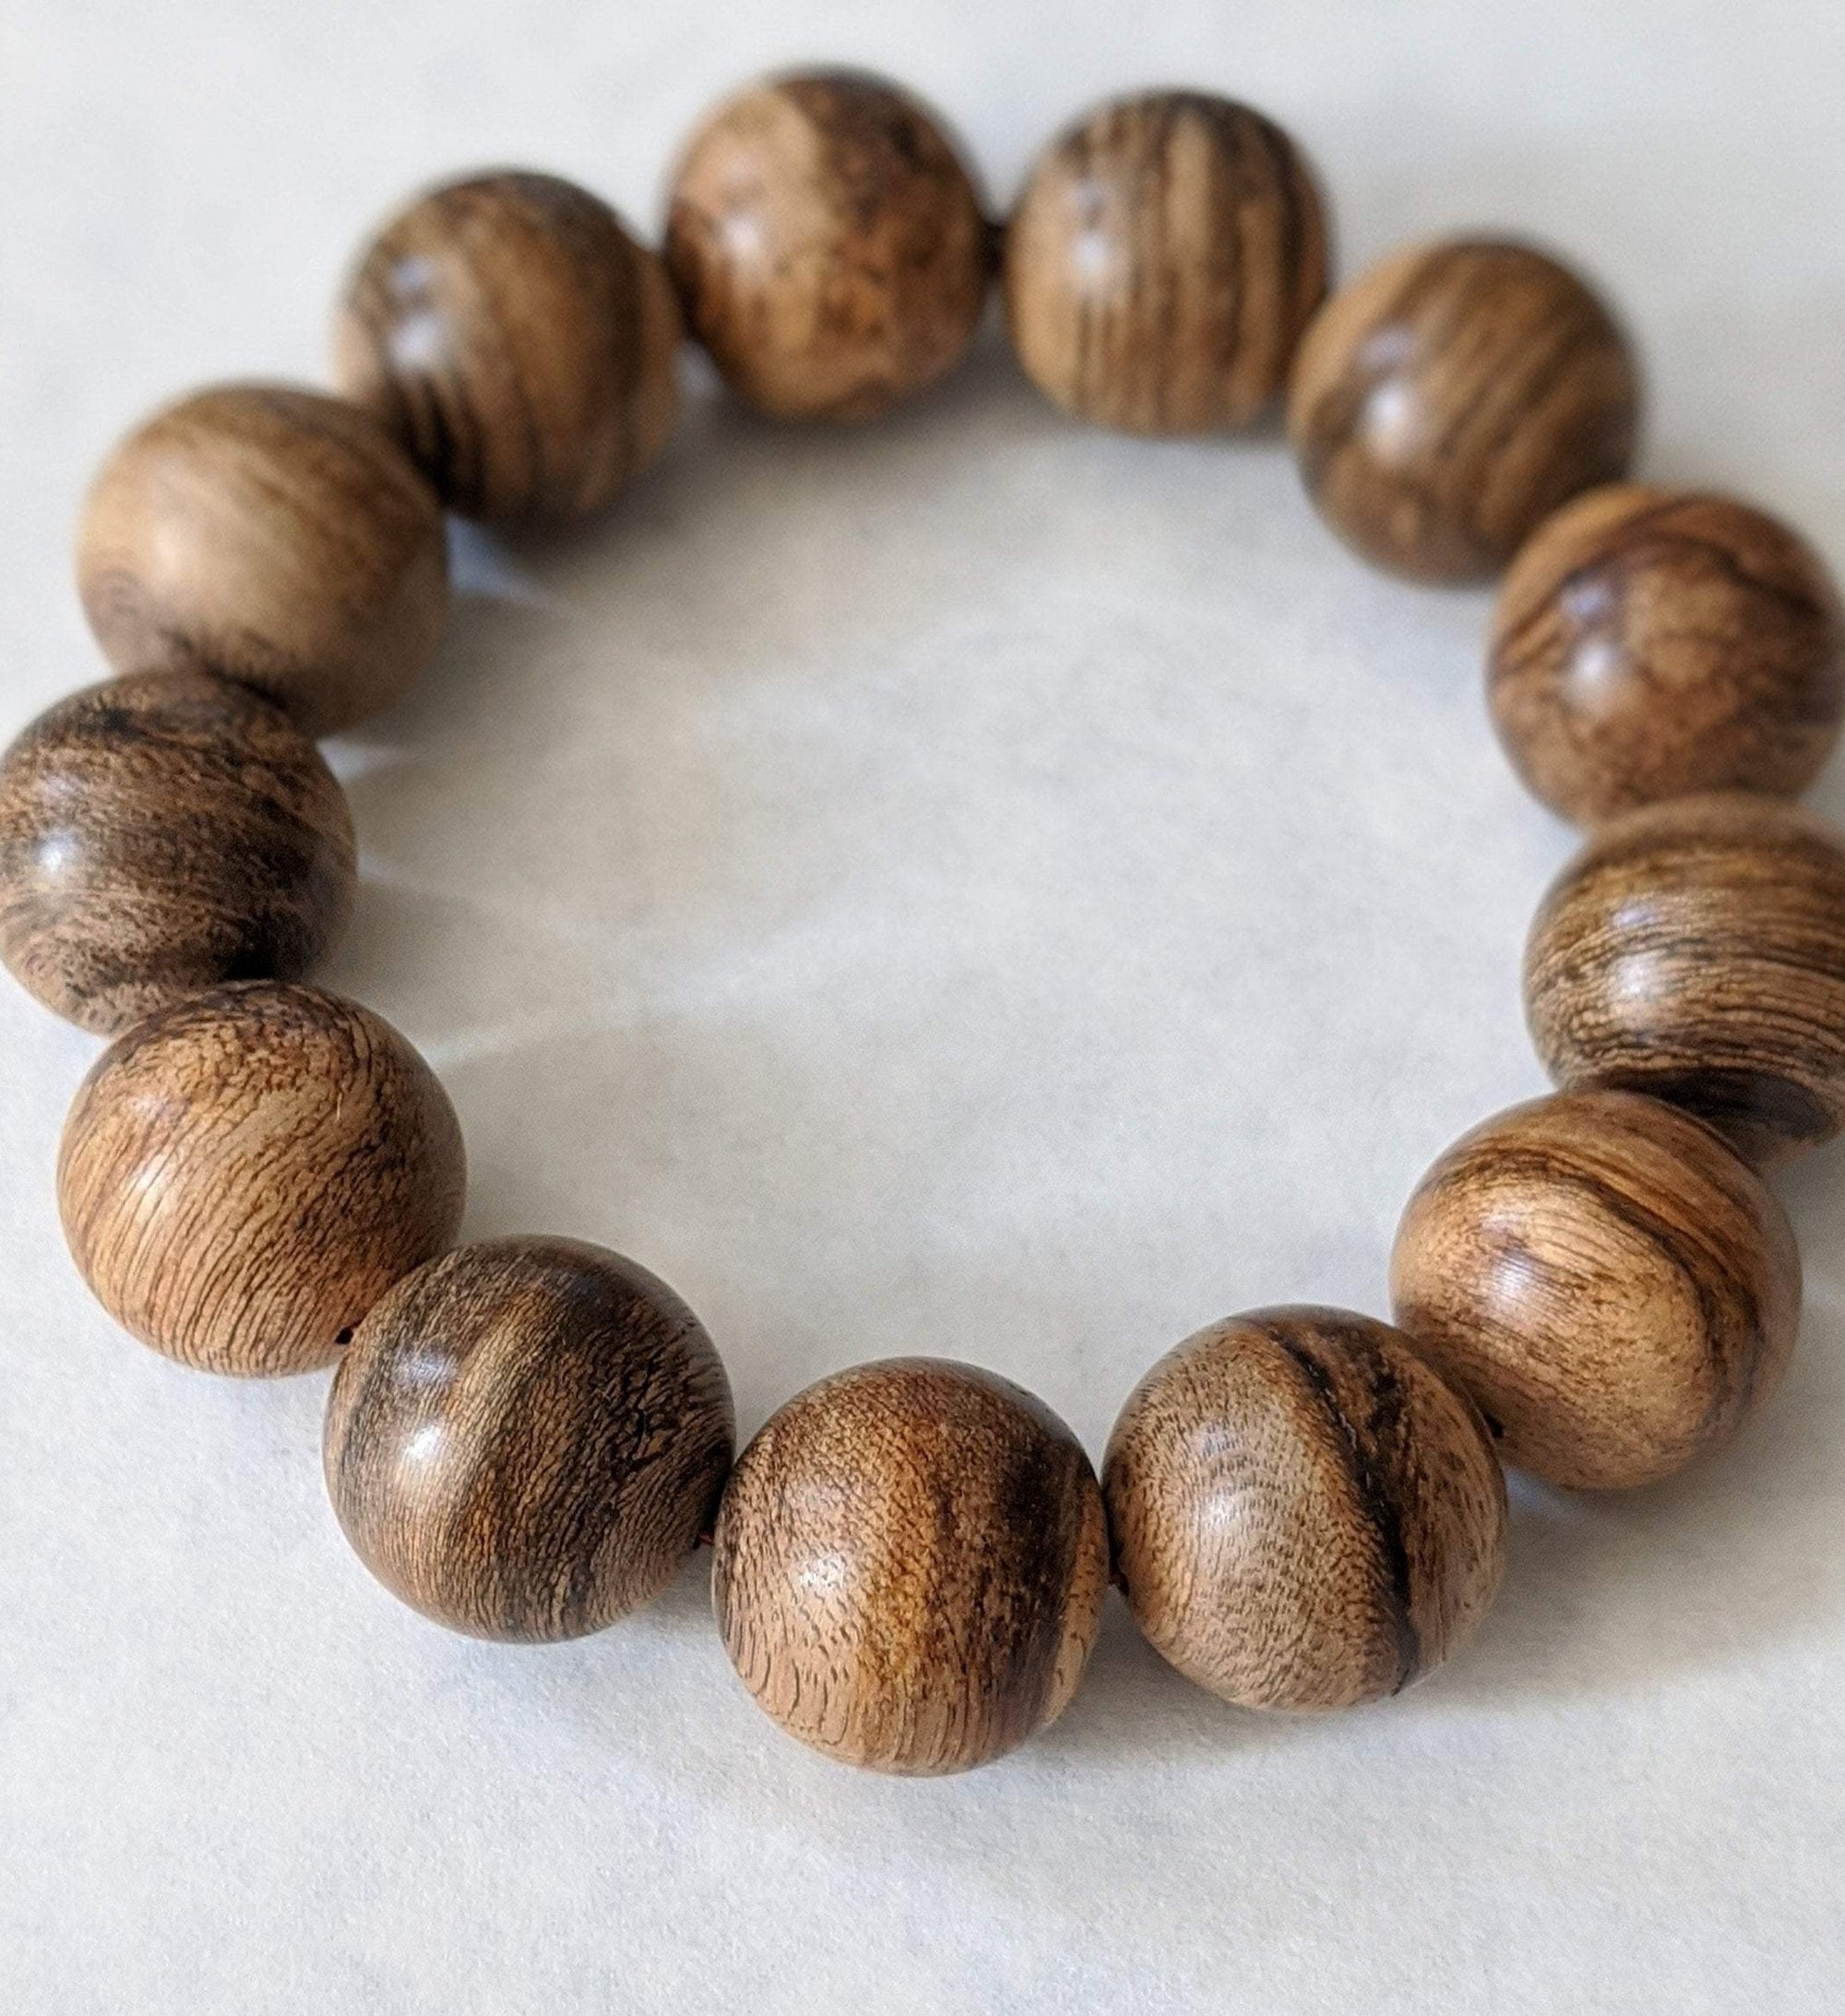 *New* D Wild Agarwood Bracelet Borneo 18mm 25g